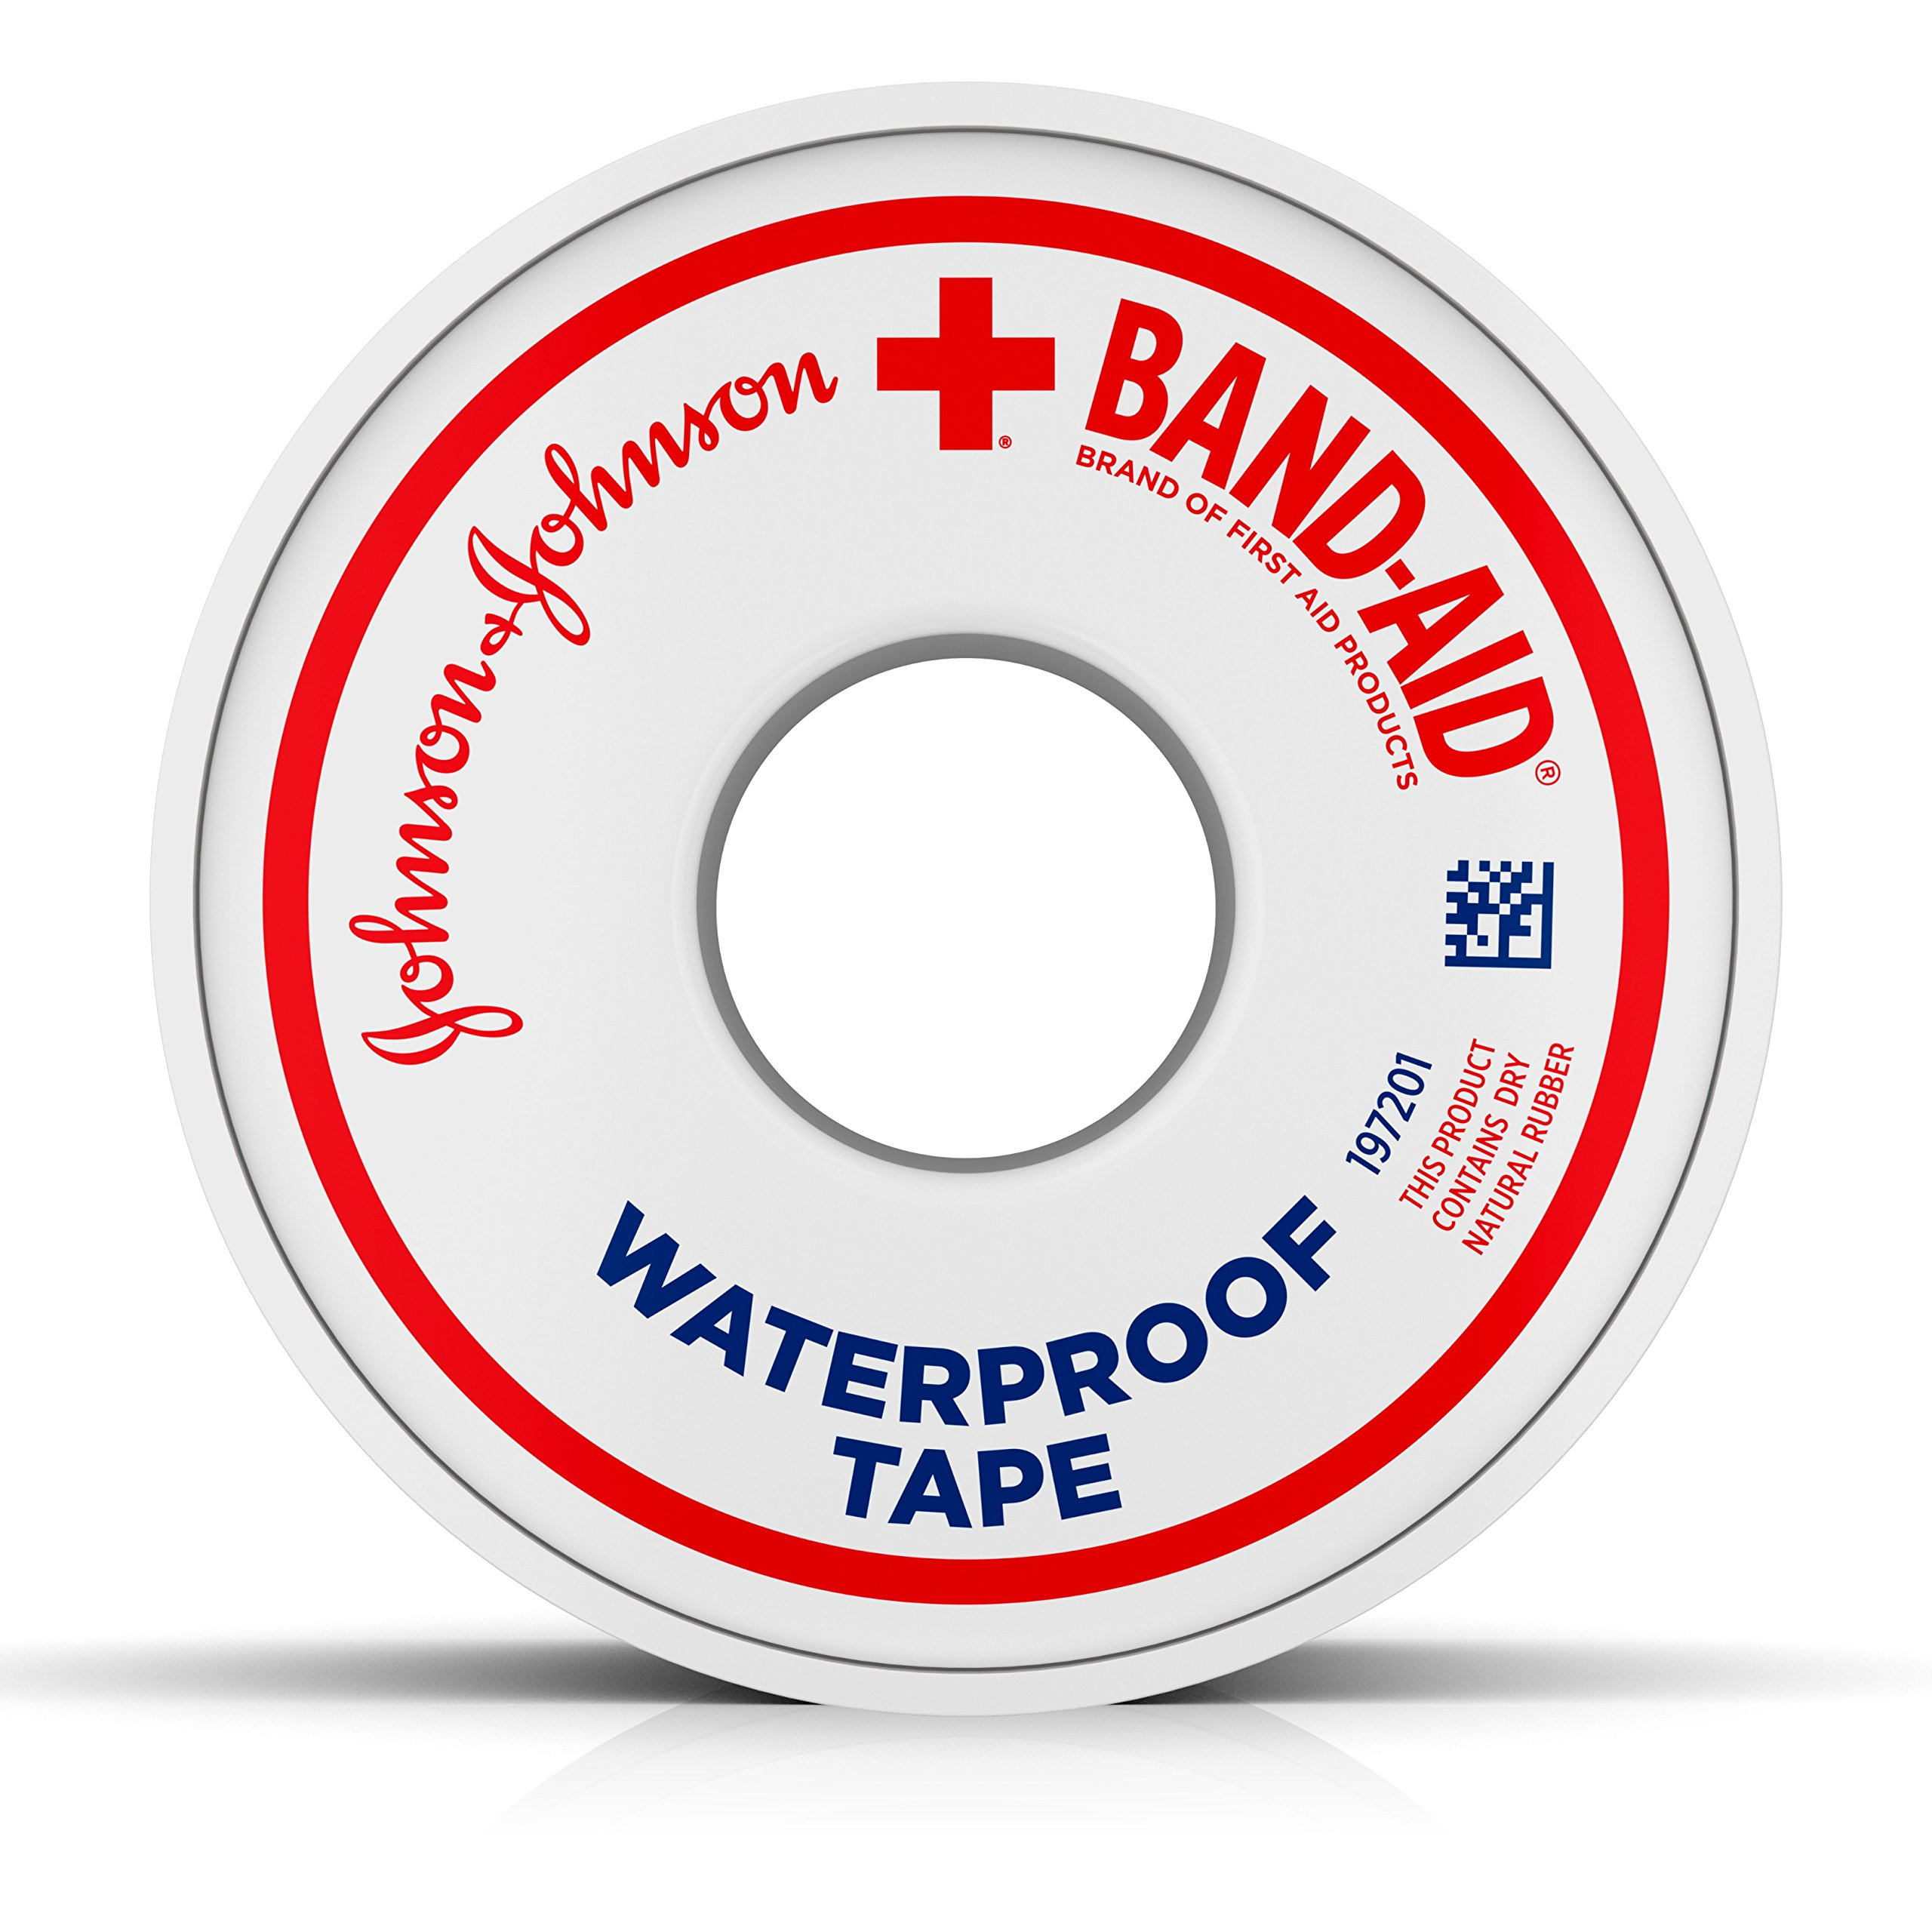 Band-Aid Brand Of First Aid Products Waterproof Tape, 1 Inch By 10 Yards (Pack of 6)